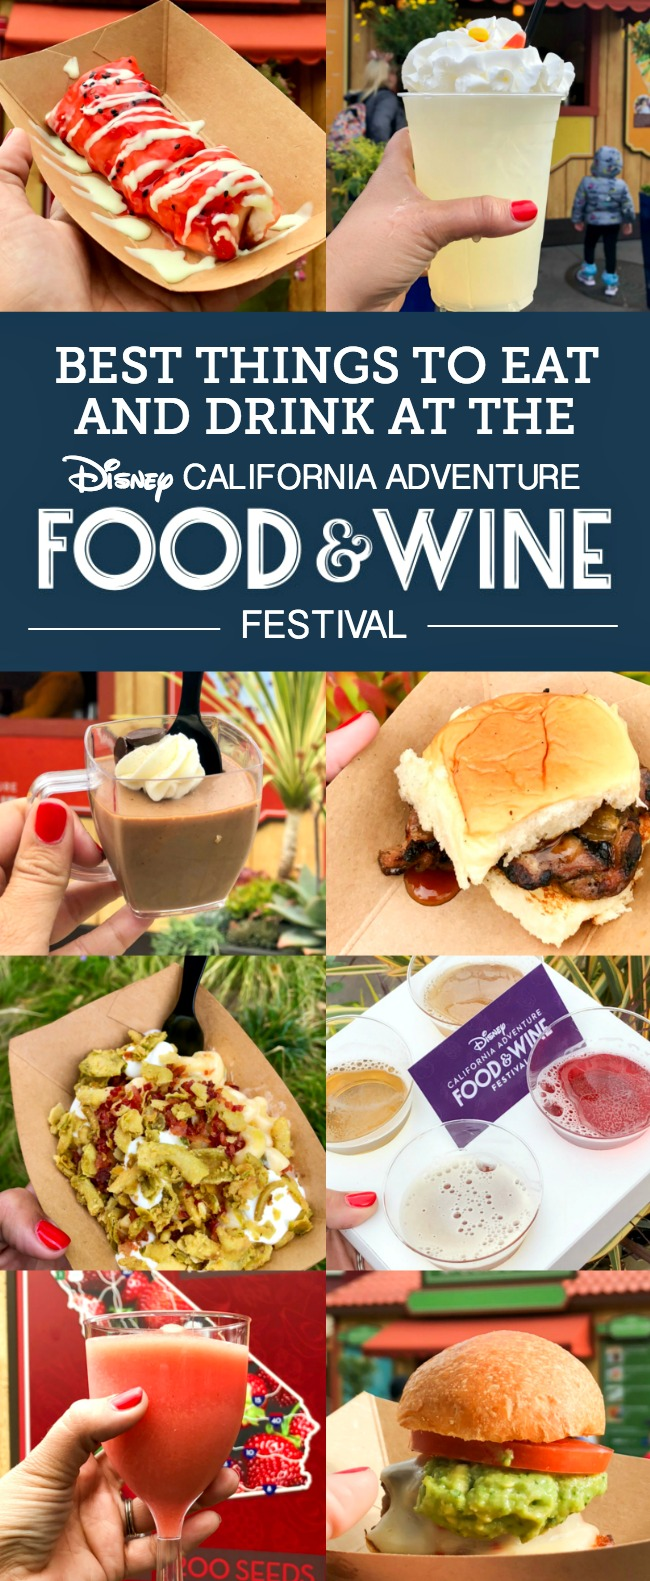 From Strawberry Frosé to Jalapeño Popper Mac & Cheese, there are so many great bites and brews to discover at the Disney California Adventure Food and Wine Festival! #DisneyCaliforniaFoodandWine #Disneyland